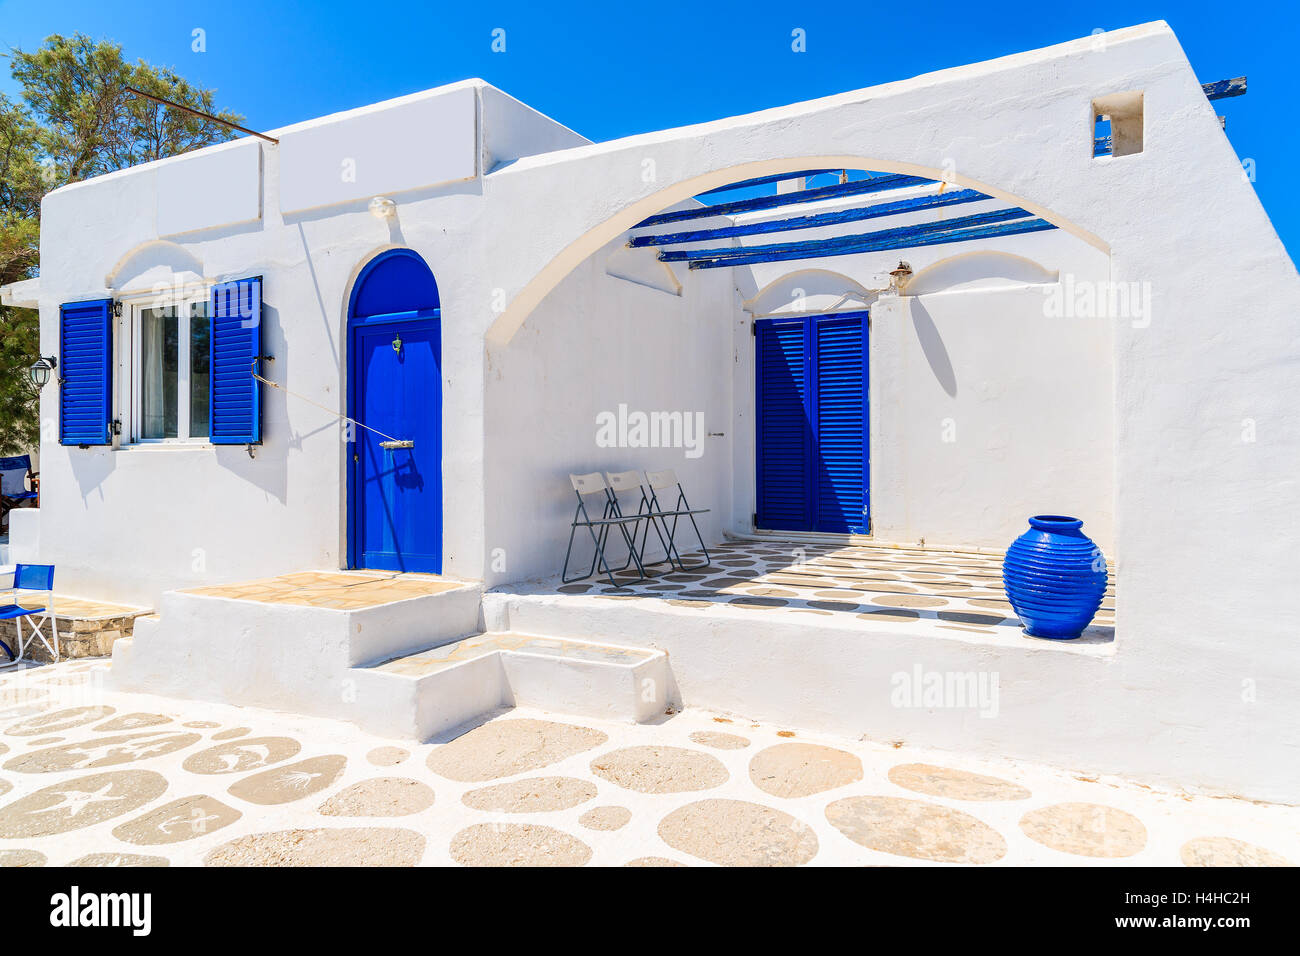 traditional greek house design html with Stock Photo Typical White Greek House With Blue Doors And Windows In Naoussa Village 123313865 on Menu together with Greek Style Home together with Pig Farm House Design likewise Metal Pergola Designs moreover Stock Photo Typical White Greek House With Blue Doors And Windows In Naoussa Village 123313865.